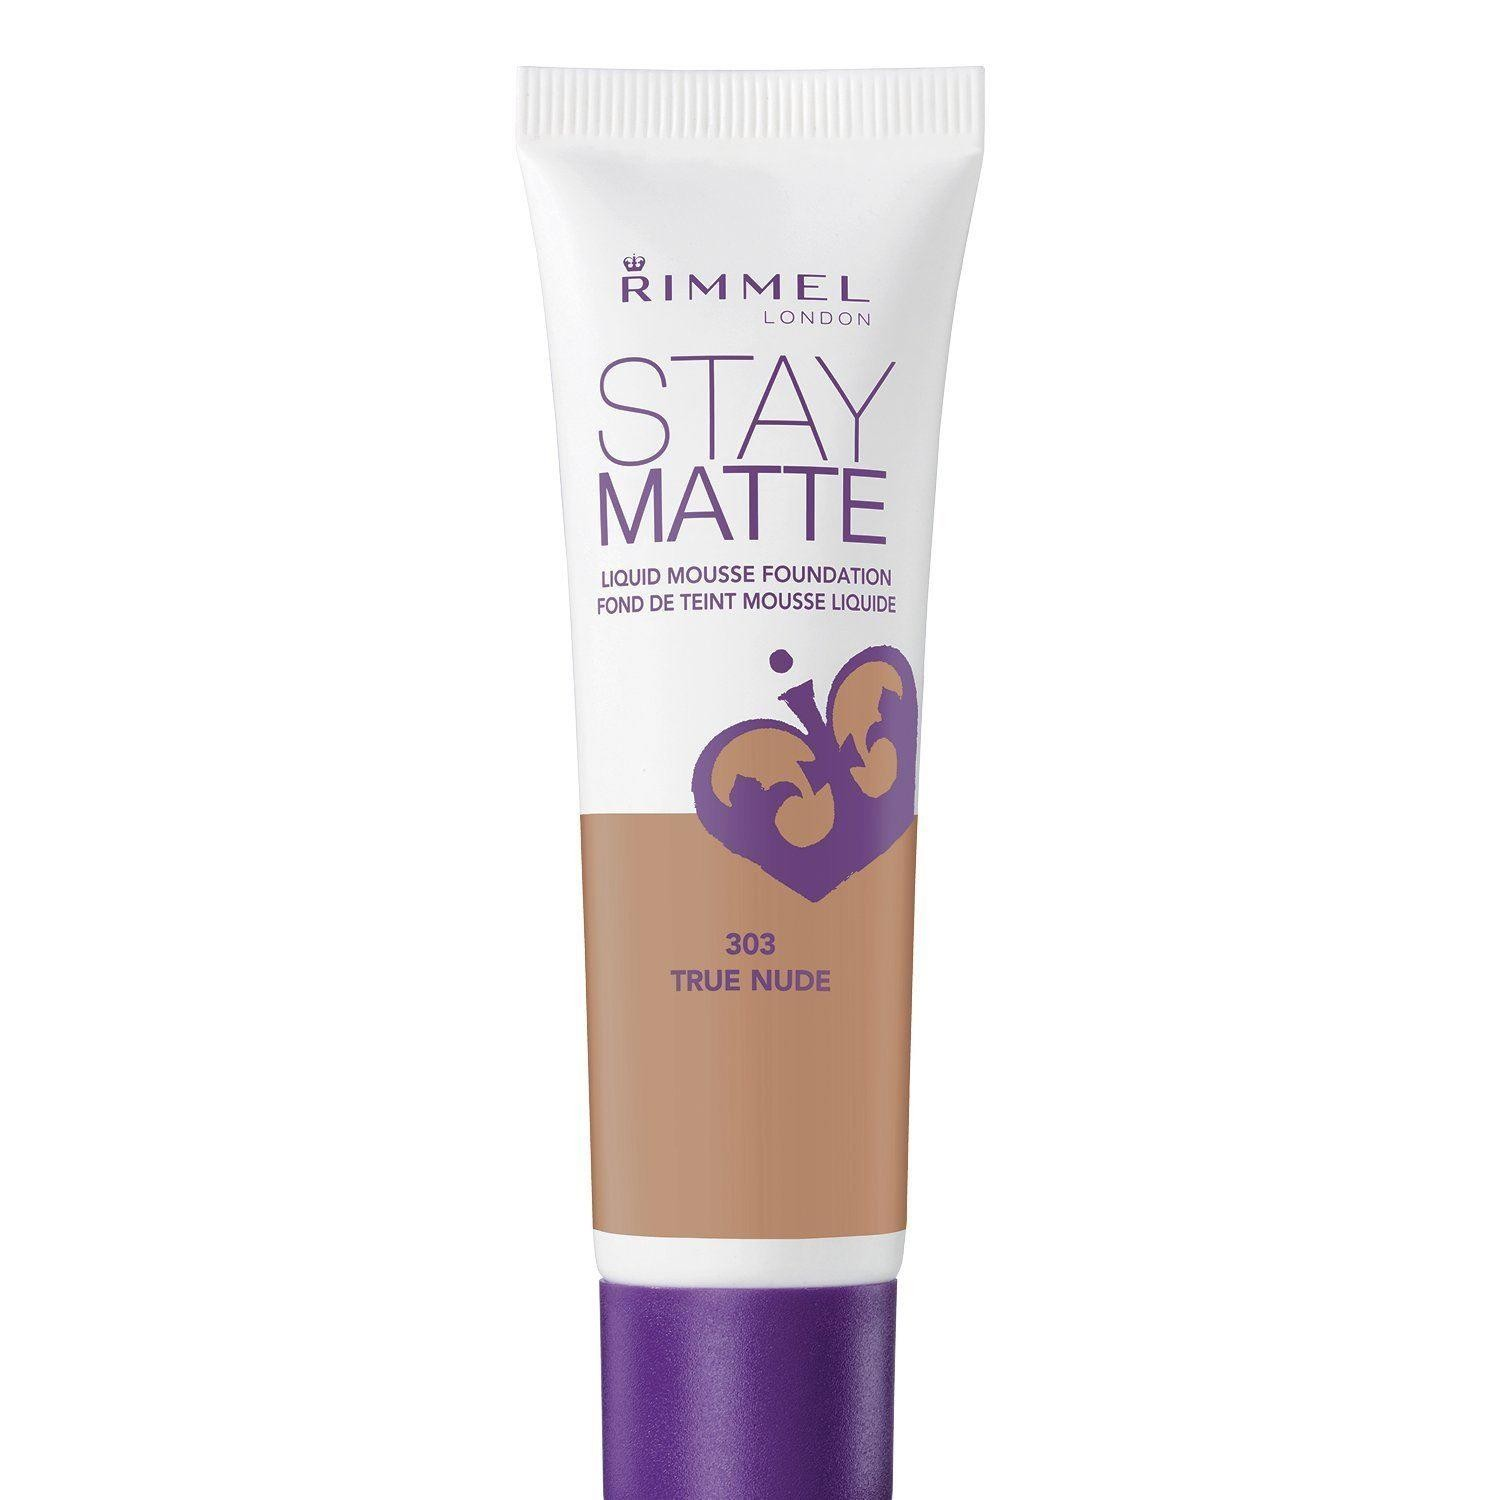 Rimmel Stay Liquid Mousse Matte Foundation True Nude 303